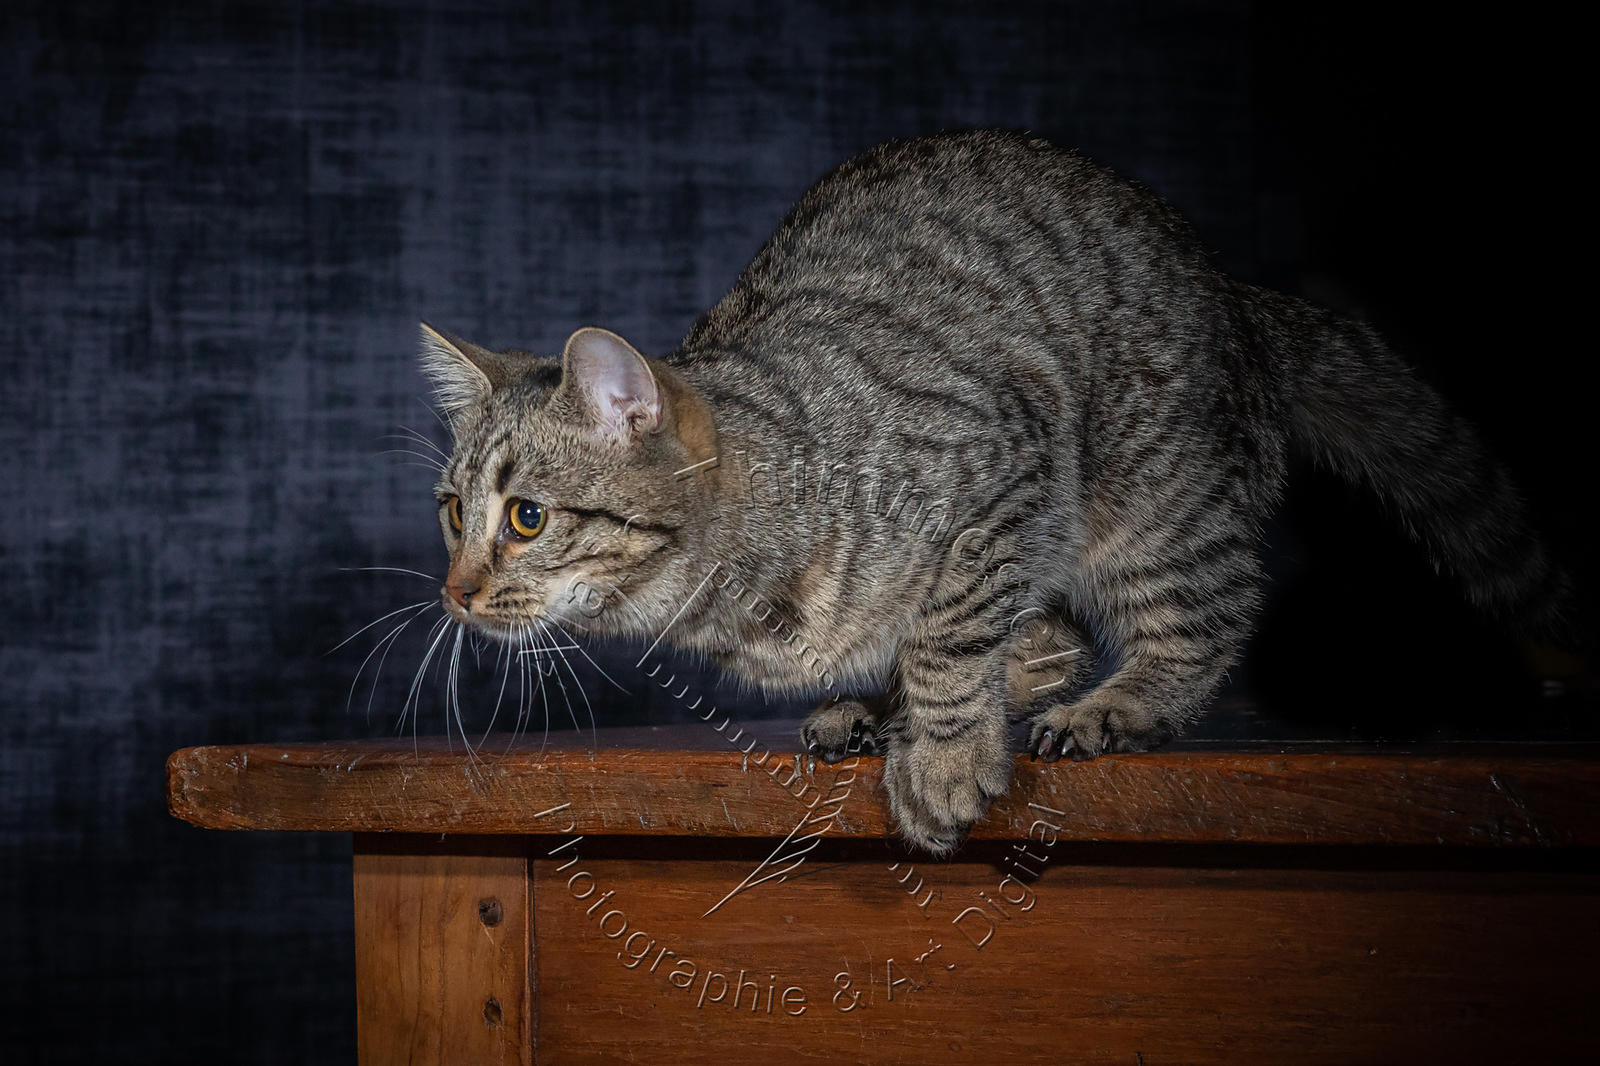 Photographie-Alain-Thimmesch-Chat-1101